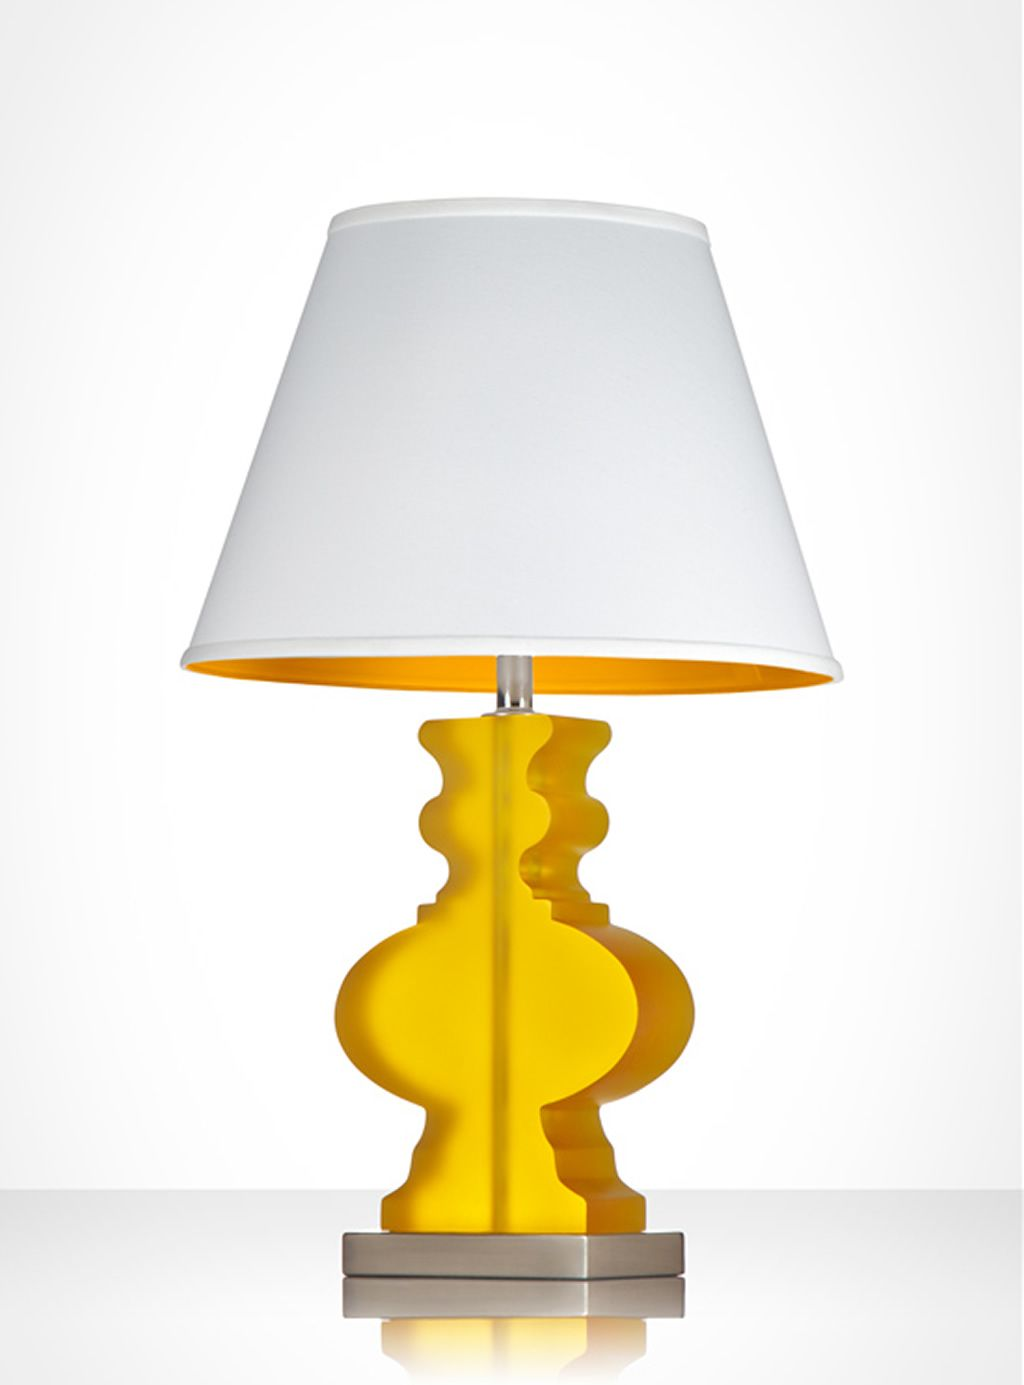 The Design Of The Lamp Ami Table Lamp Design For Hospitality Lighting Table Lamp Wooden Table Lamps Lamp